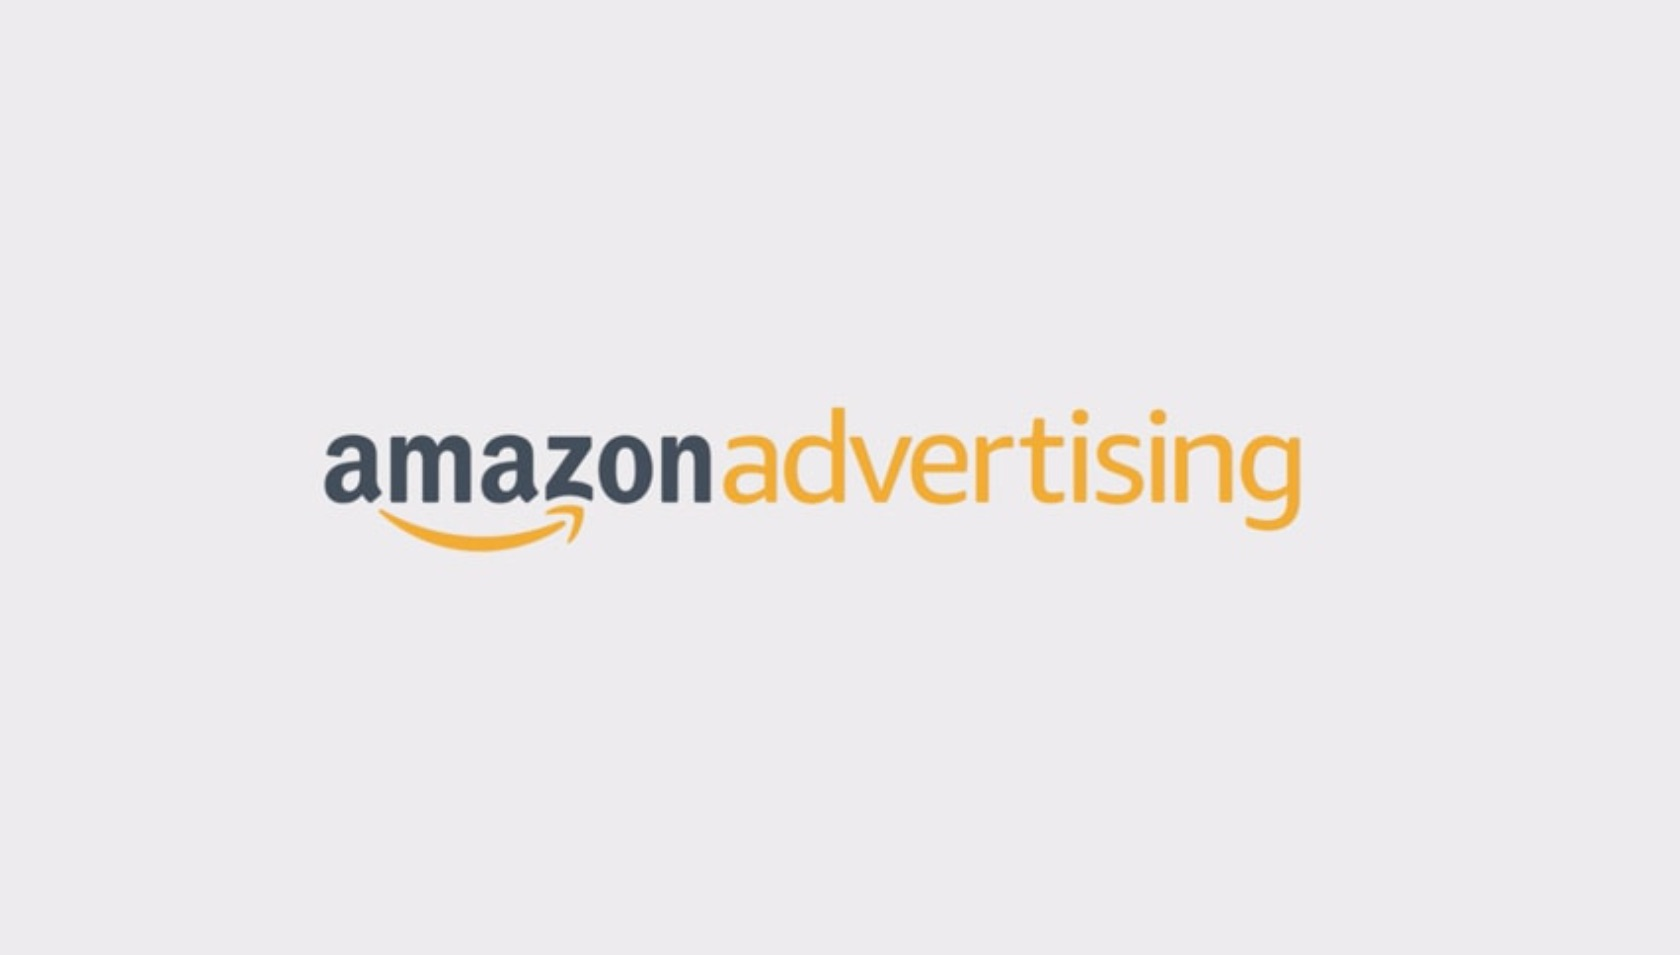 /amazon-advertising-is-unstoppable-3u2z352f feature image